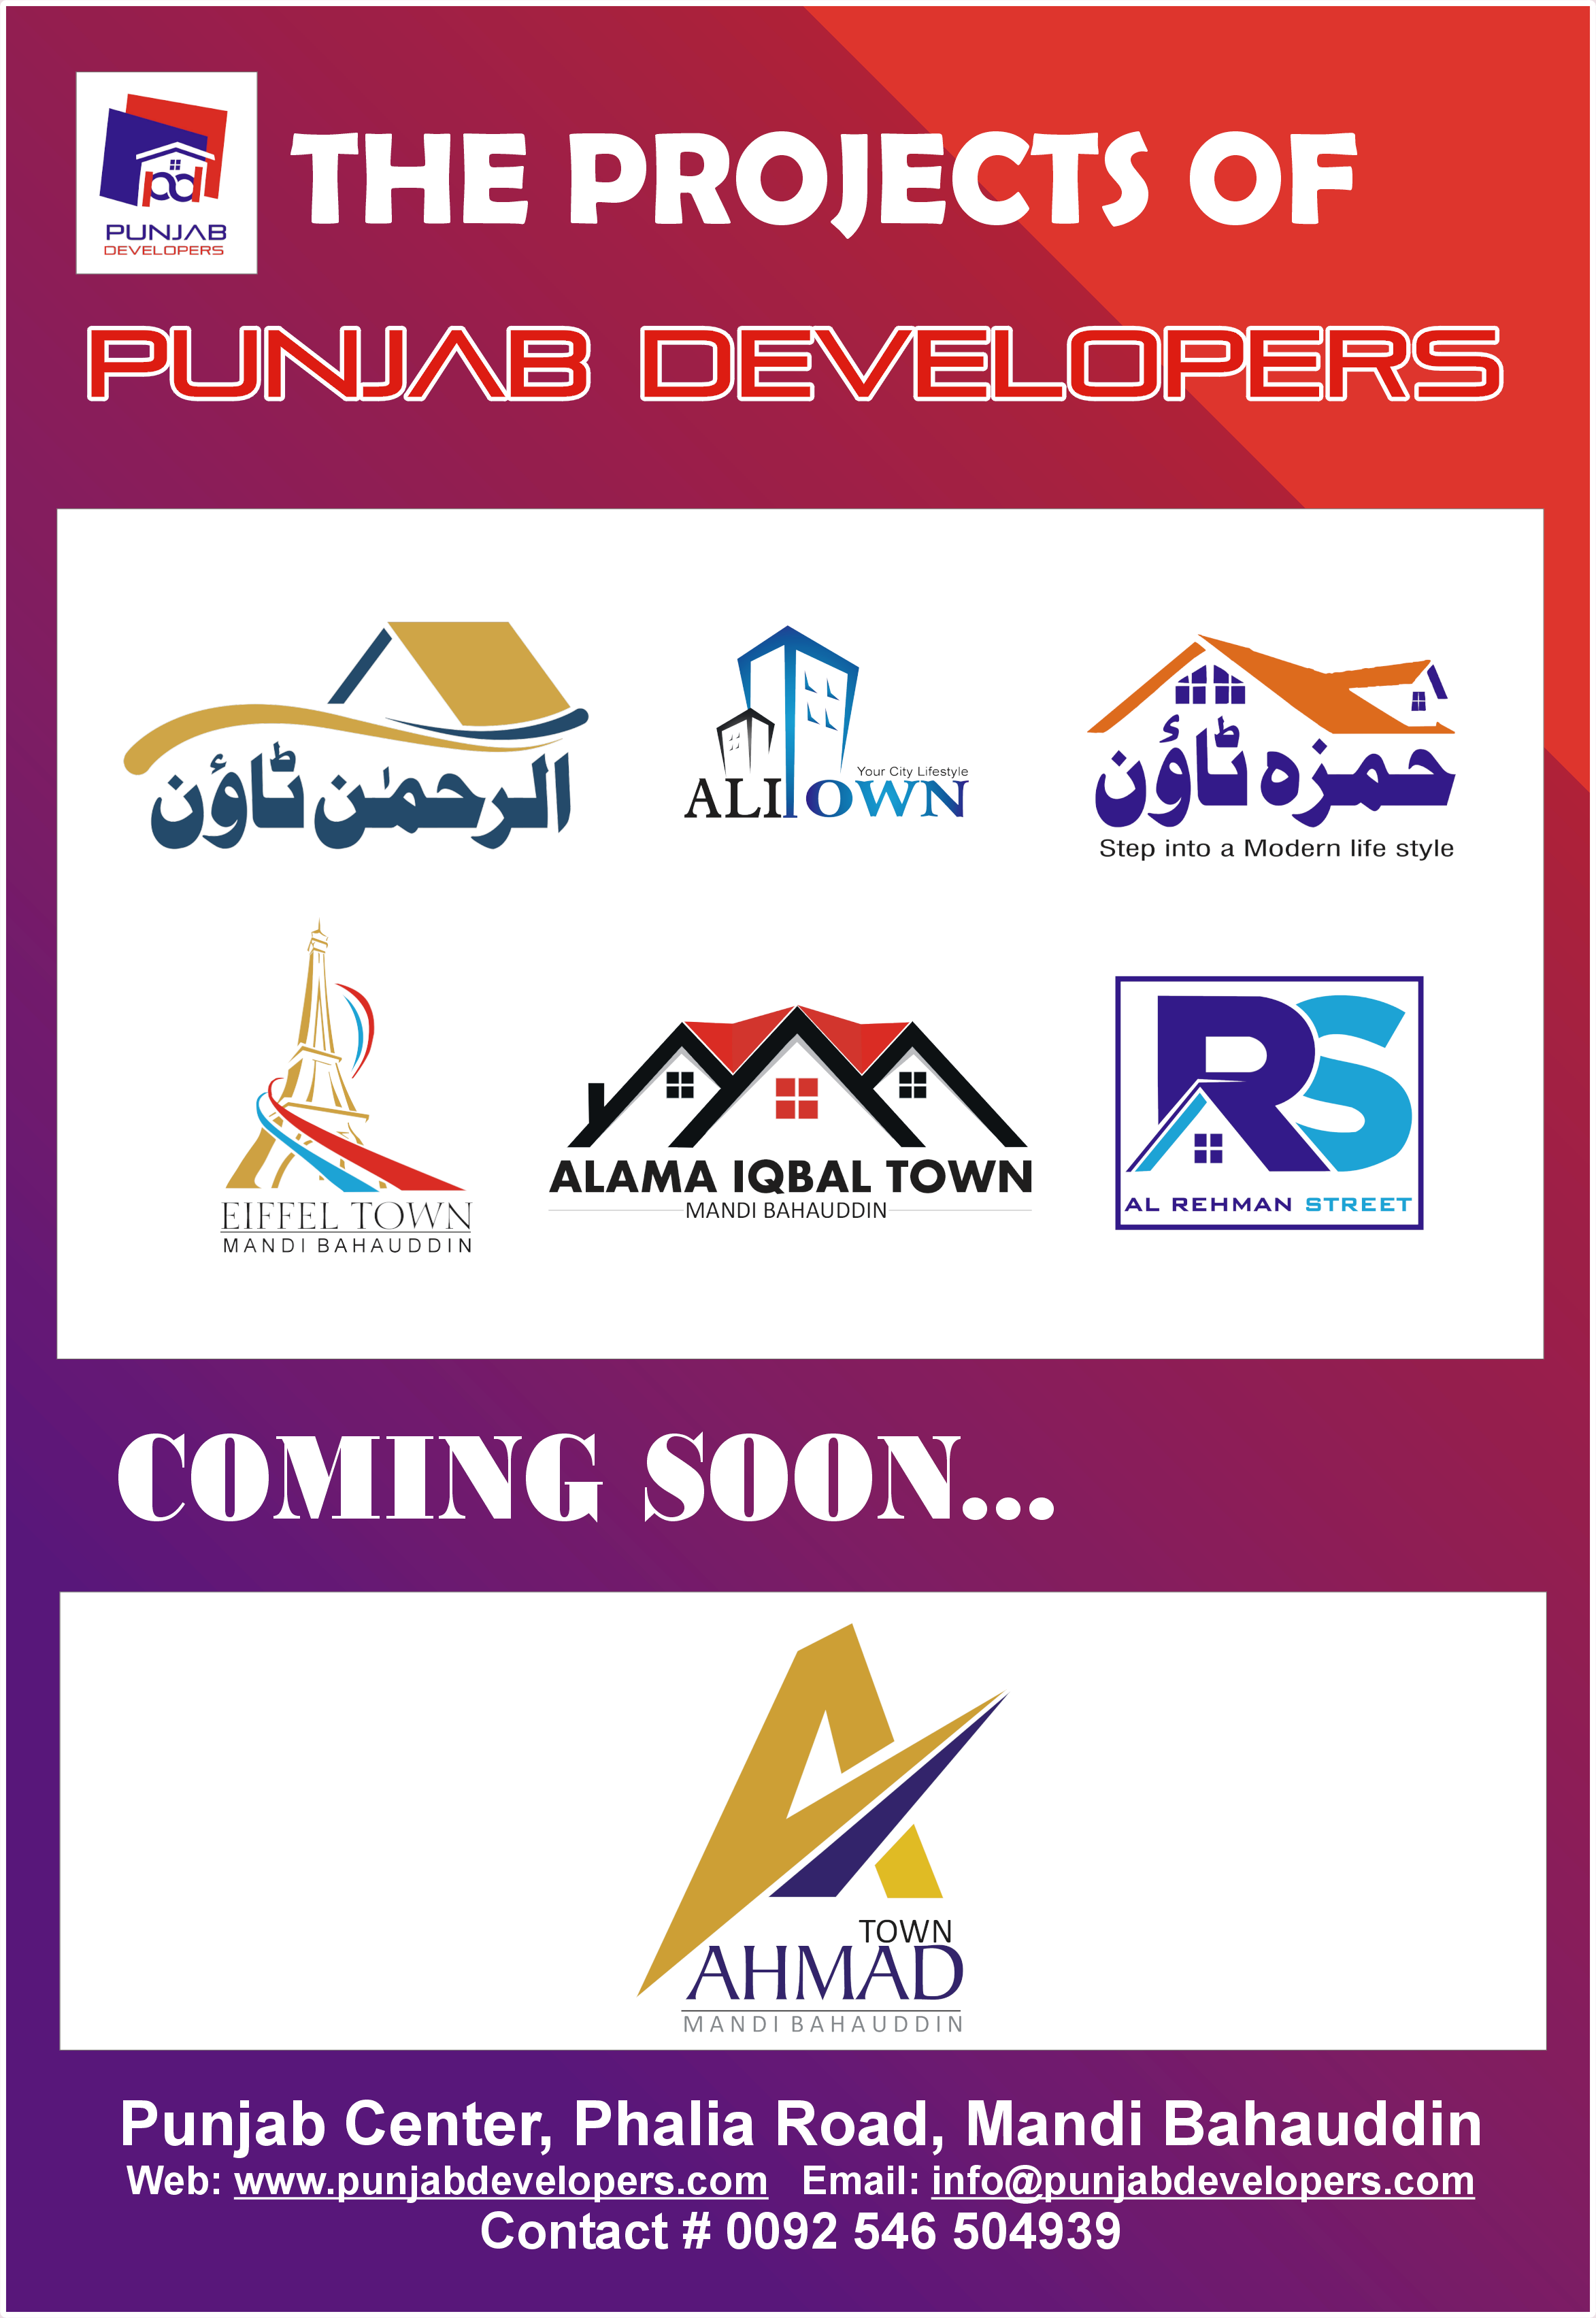 All Running Projects of Punjab Developers